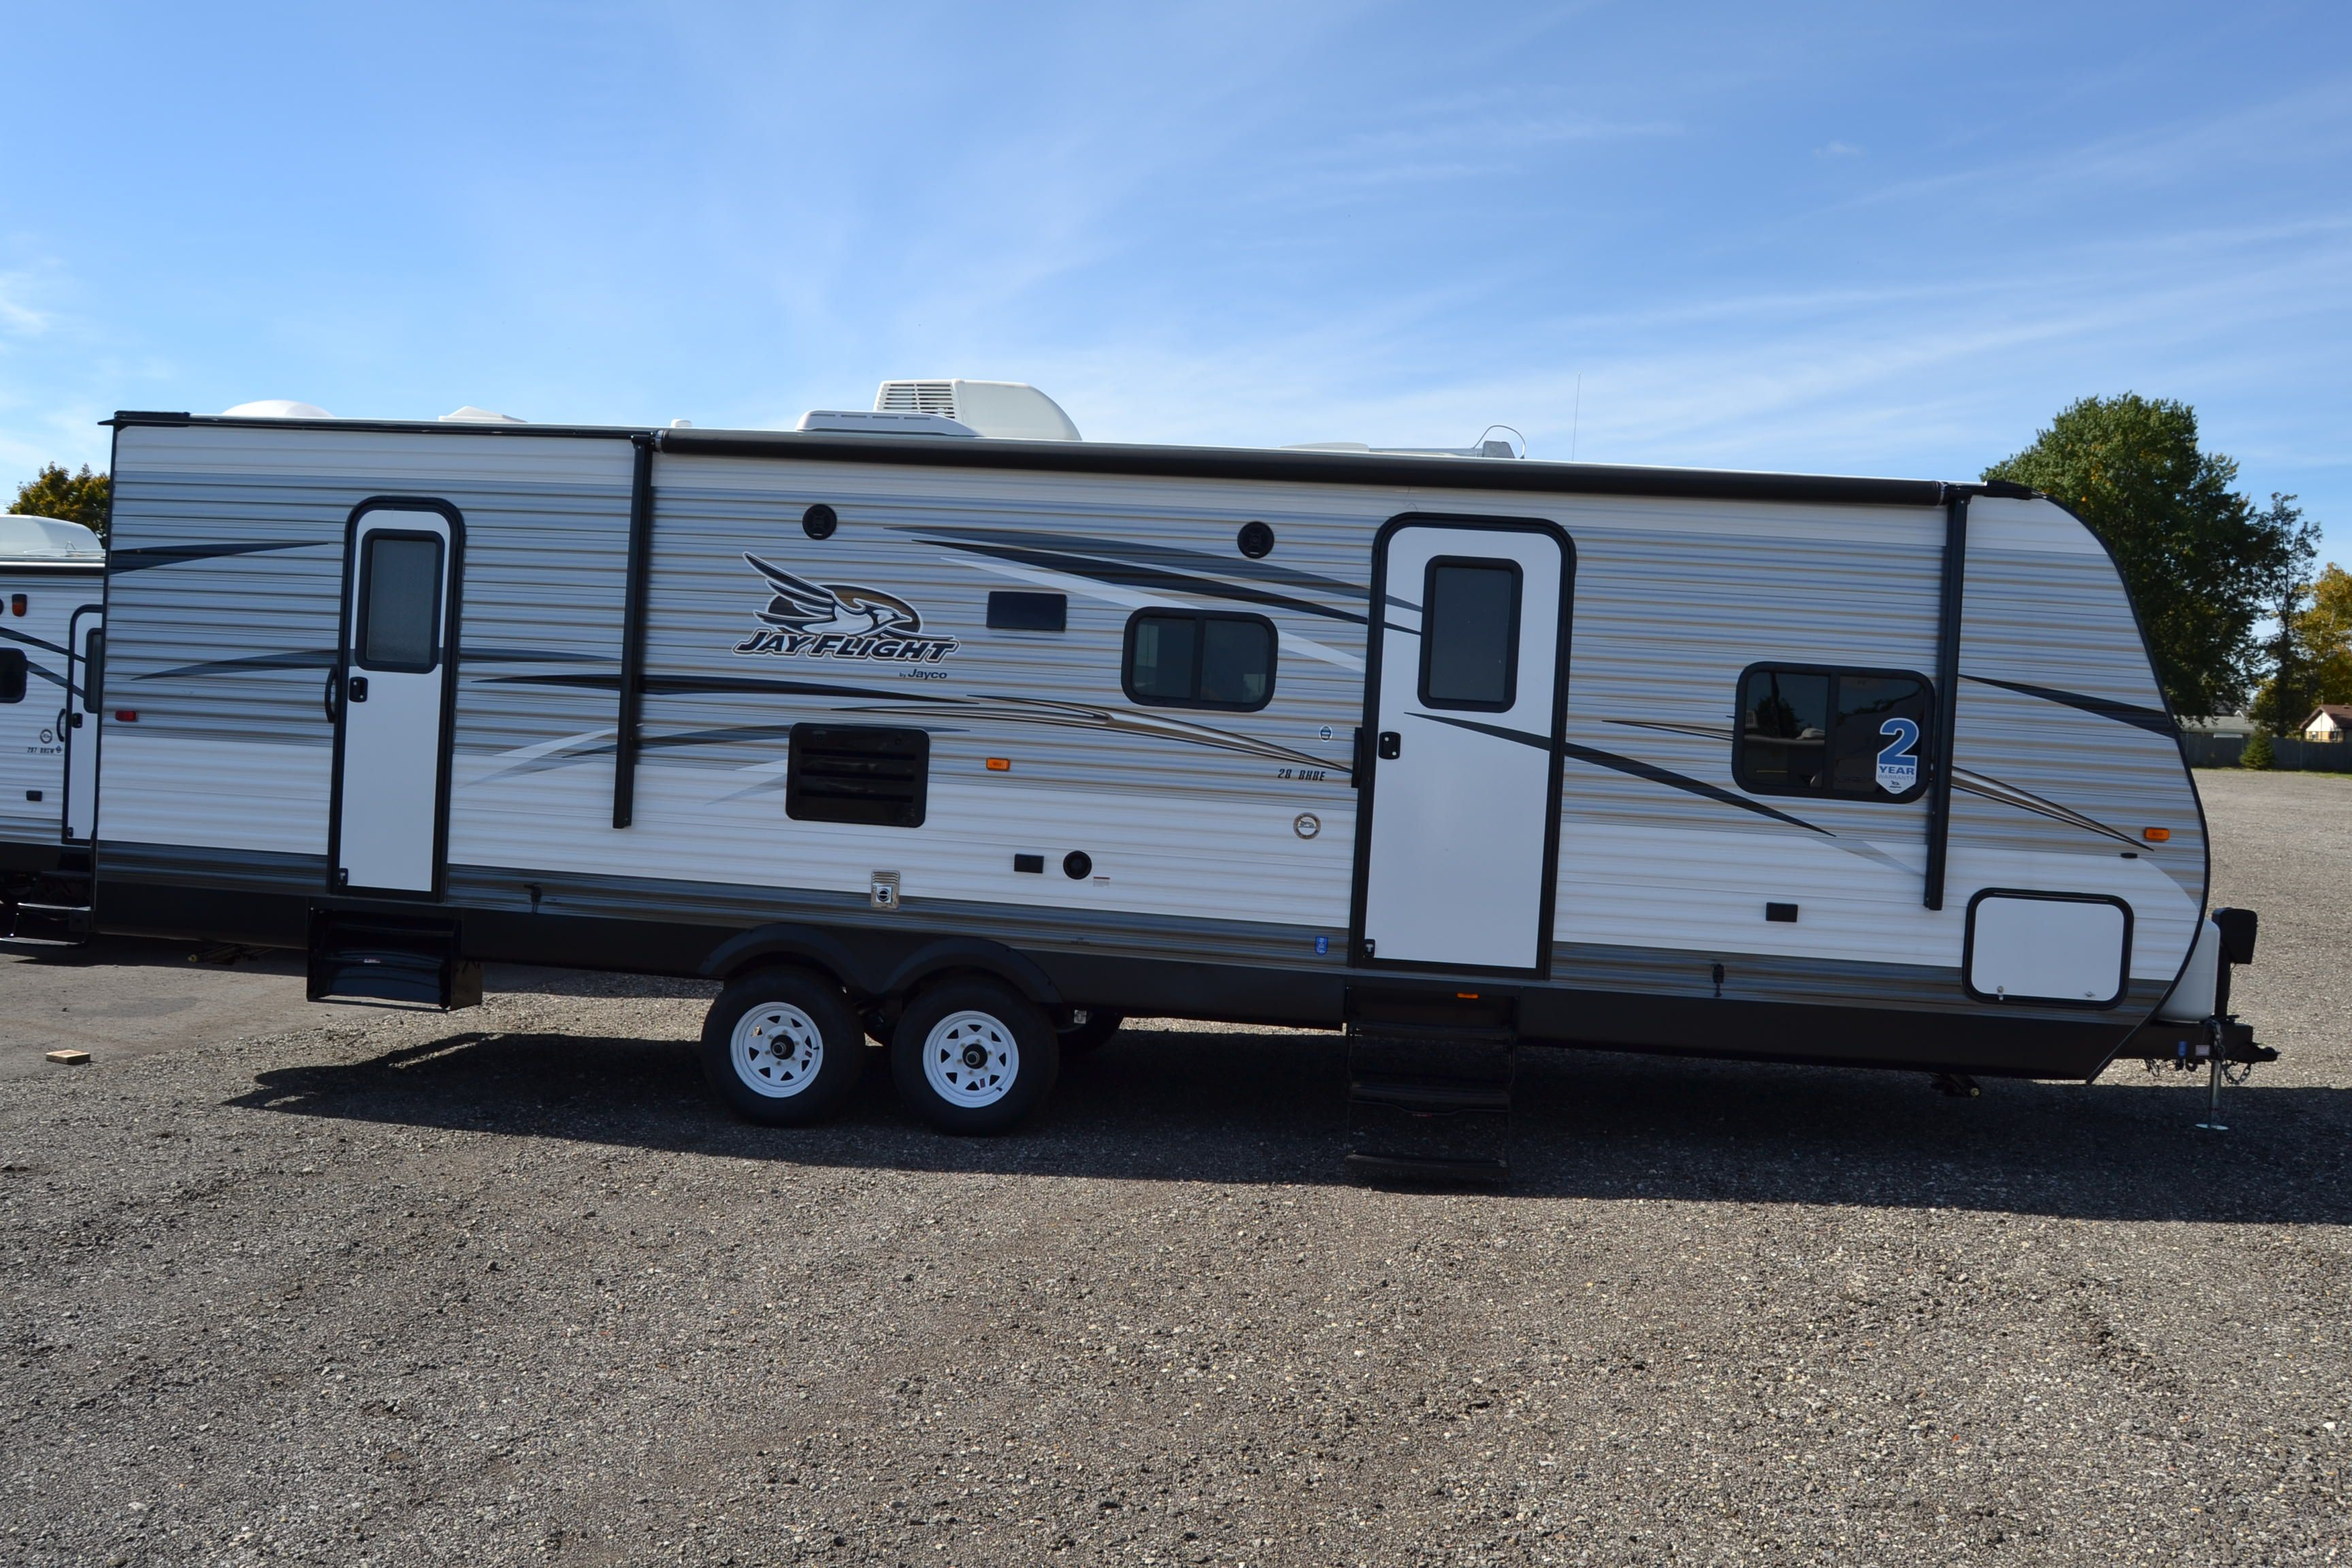 awnings cross pull bumper store trailer frontier img roping fire supply trailers utah awning horse